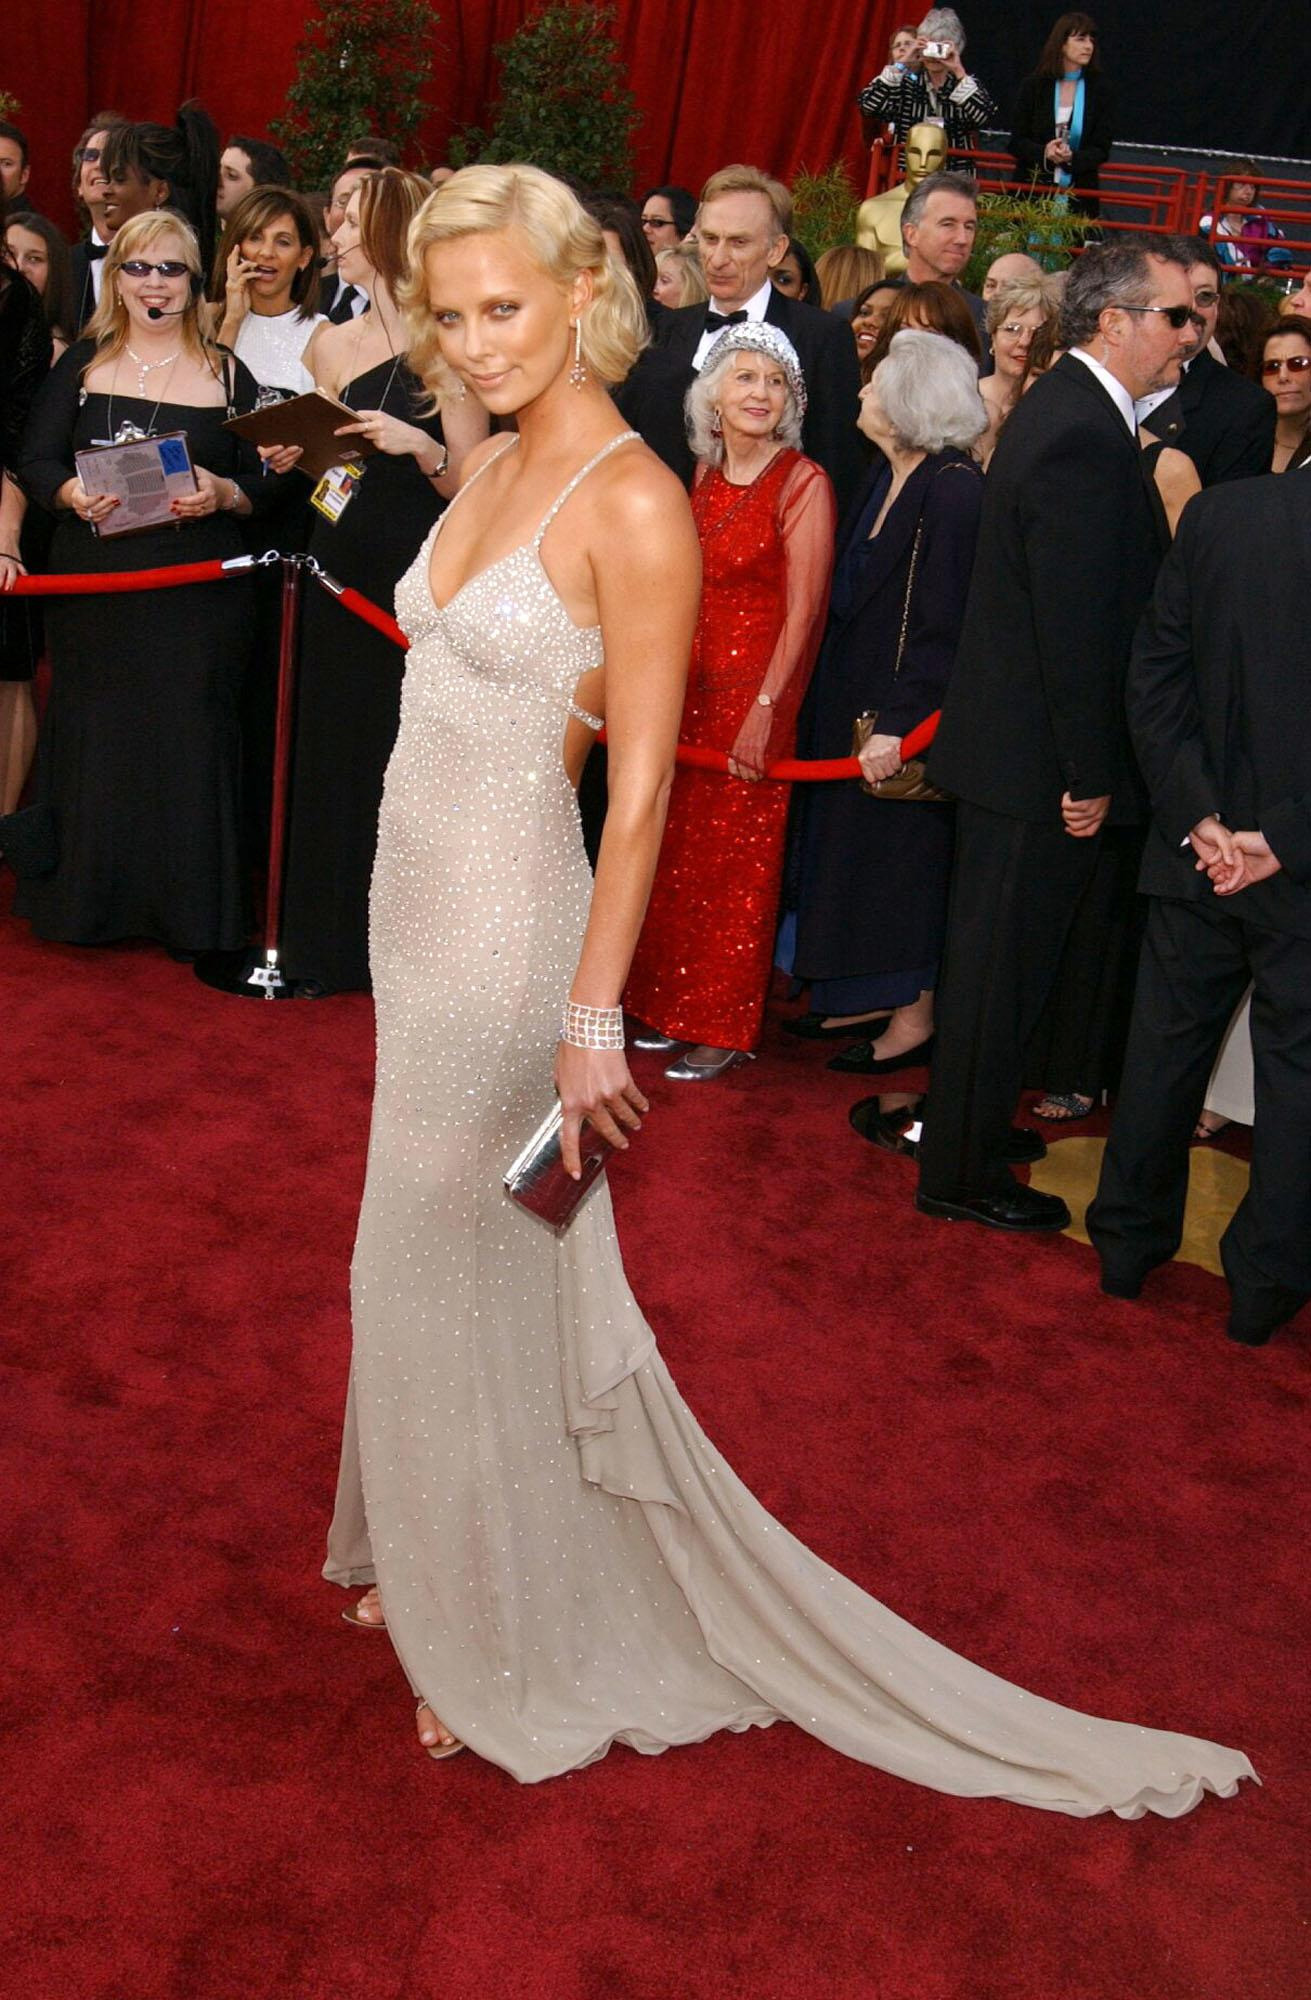 Charlize Theron at the 2004 Oscars in a Gucci gown